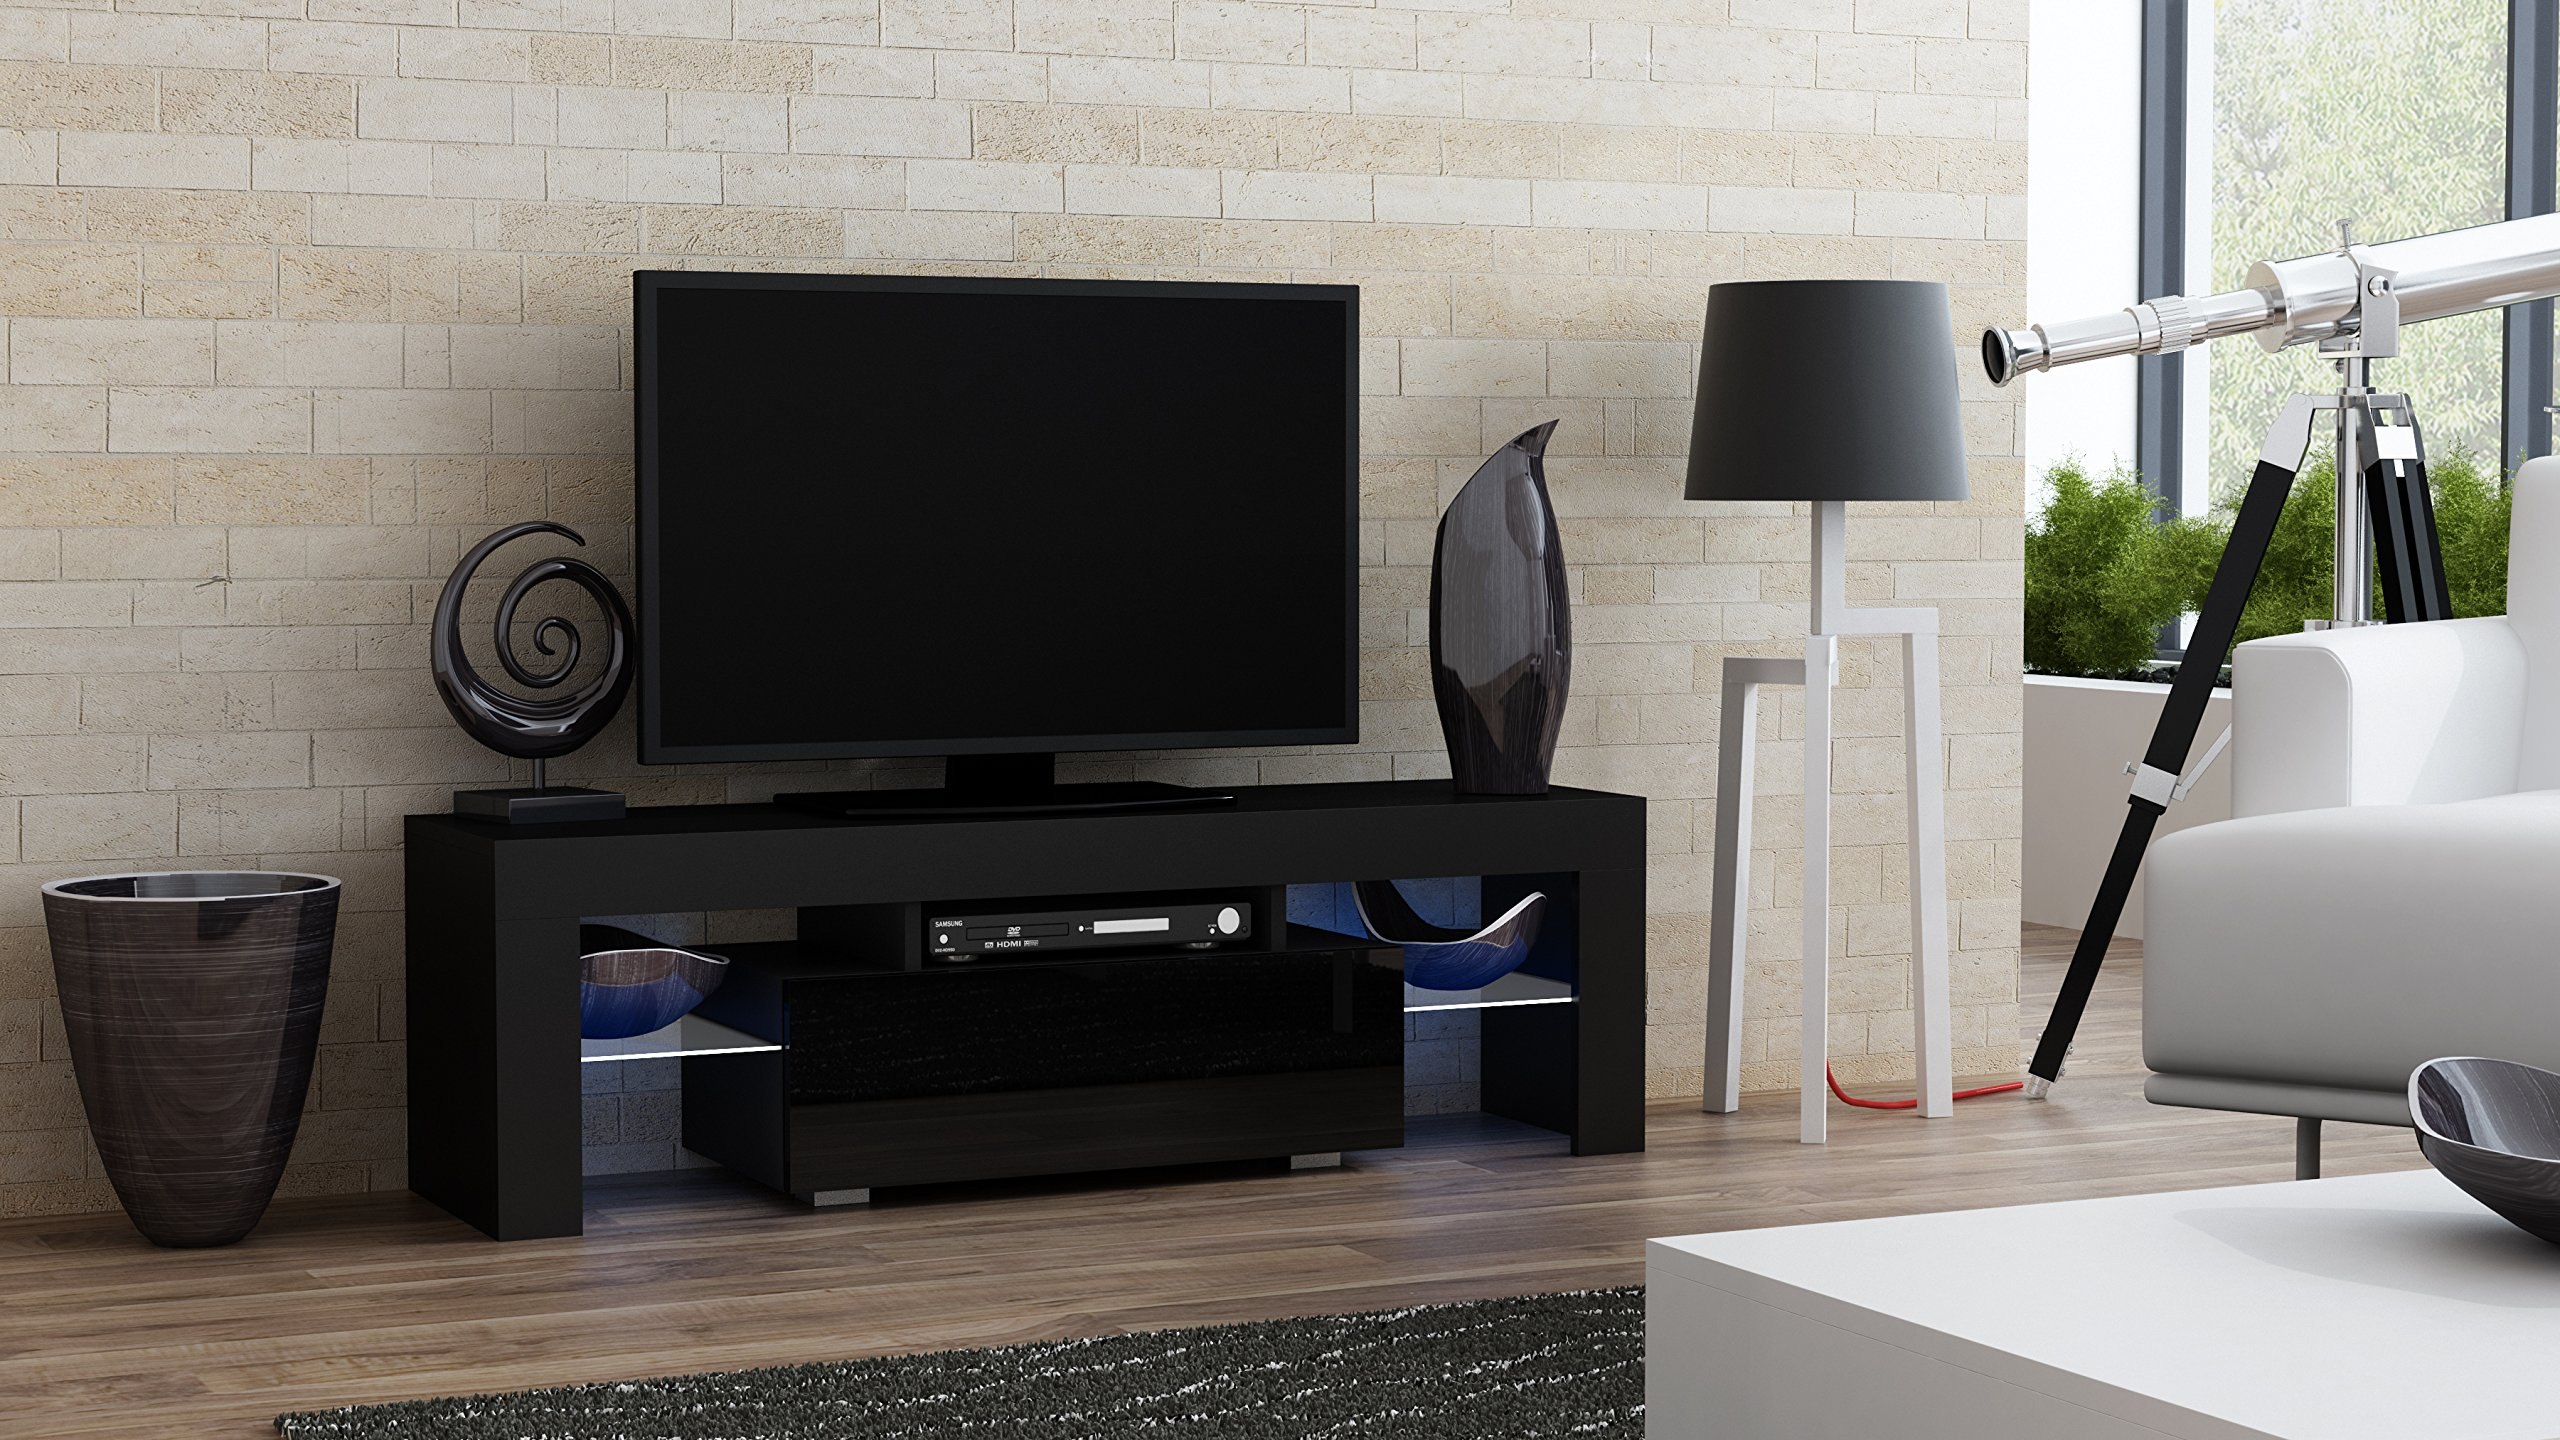 TV Stand MILANO 130 / Modern LED TV Cabinet / Living Room Furniture / Tv Console fit for up to 55'' flat TV screens / Capacity Tv Console for Modern Living Room (Black & Black)